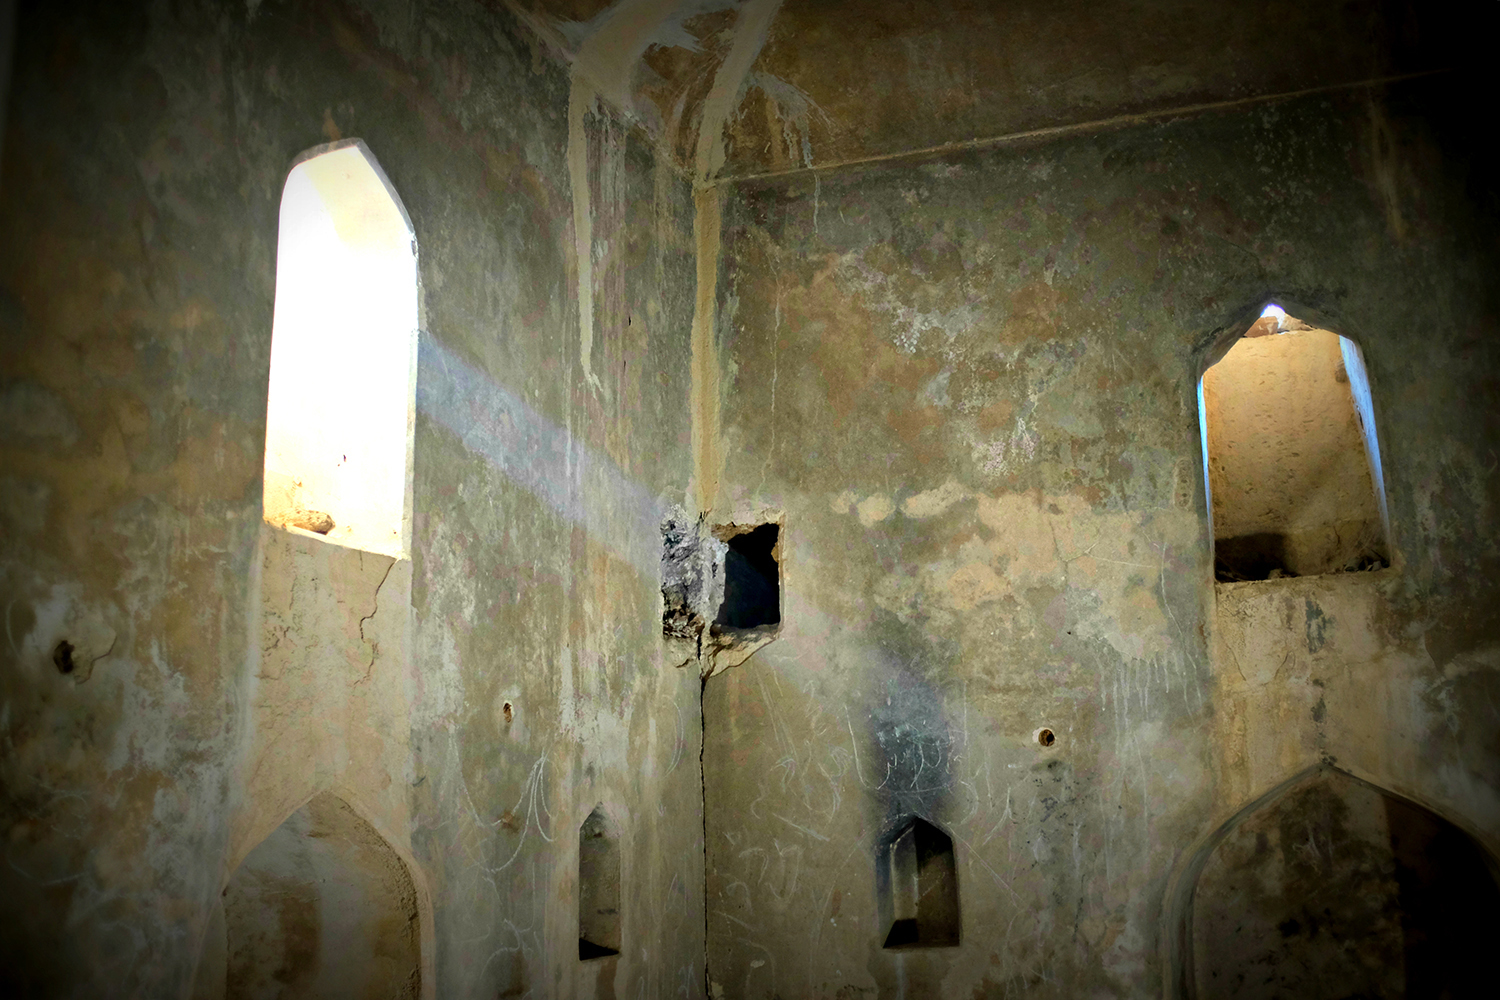 Temples were vandalised and frescoes scratched away and now they are far from their former glory.